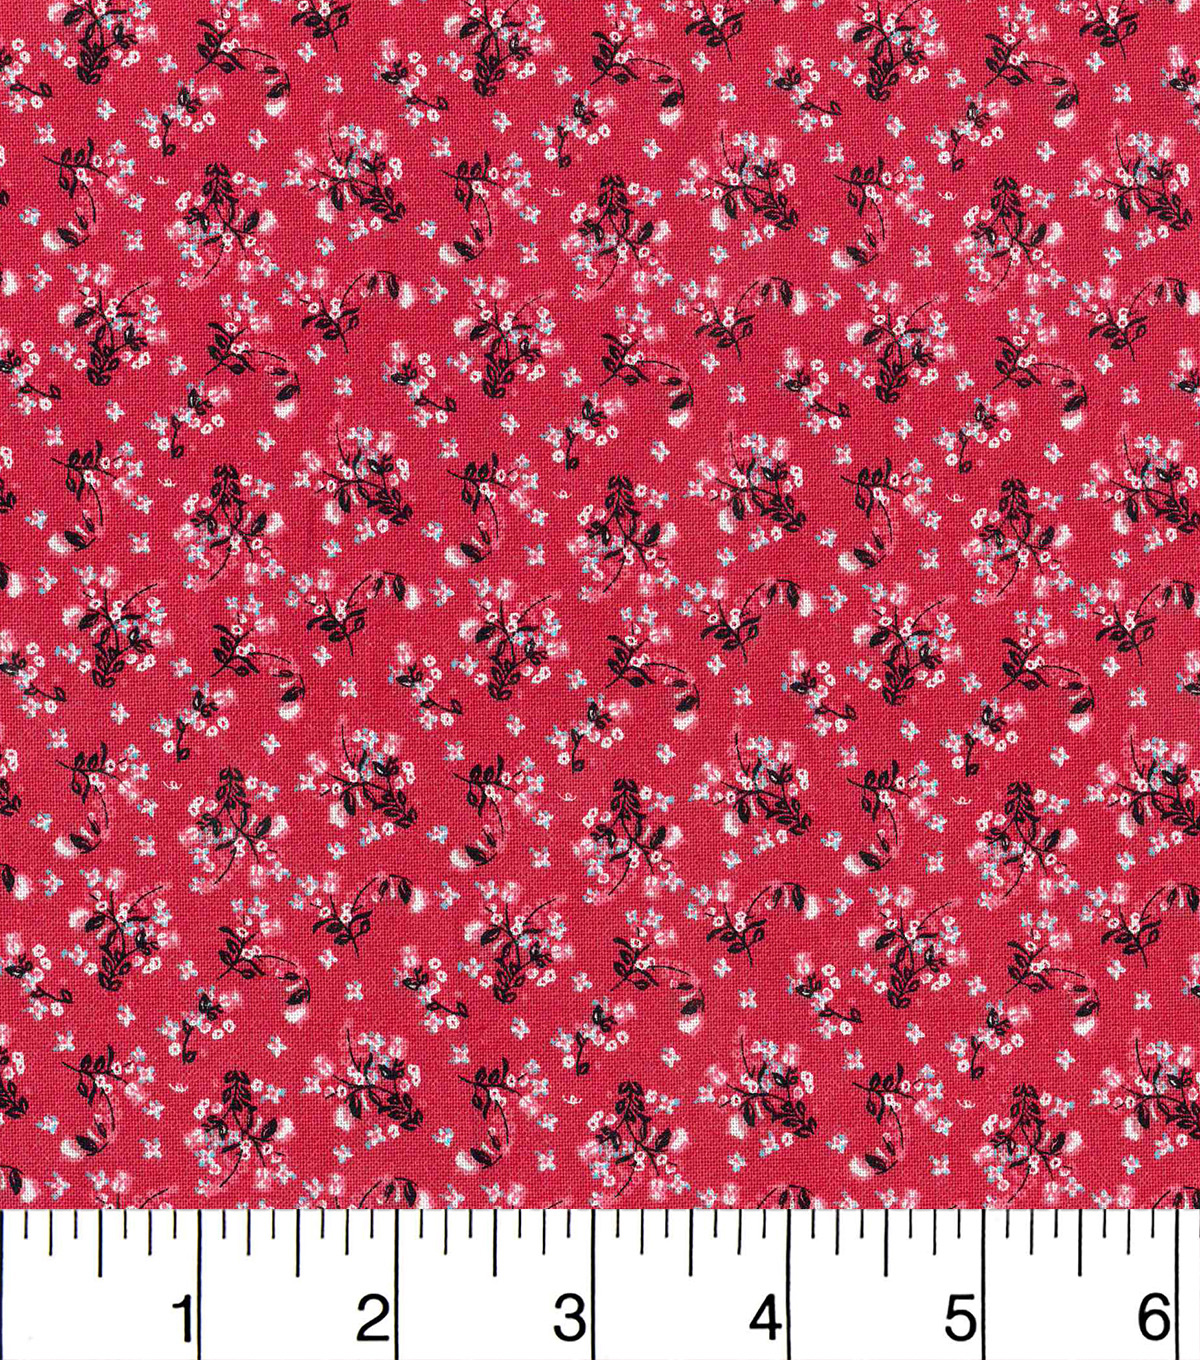 Keepsake Calico Cotton Fabric-Calico Floral Red